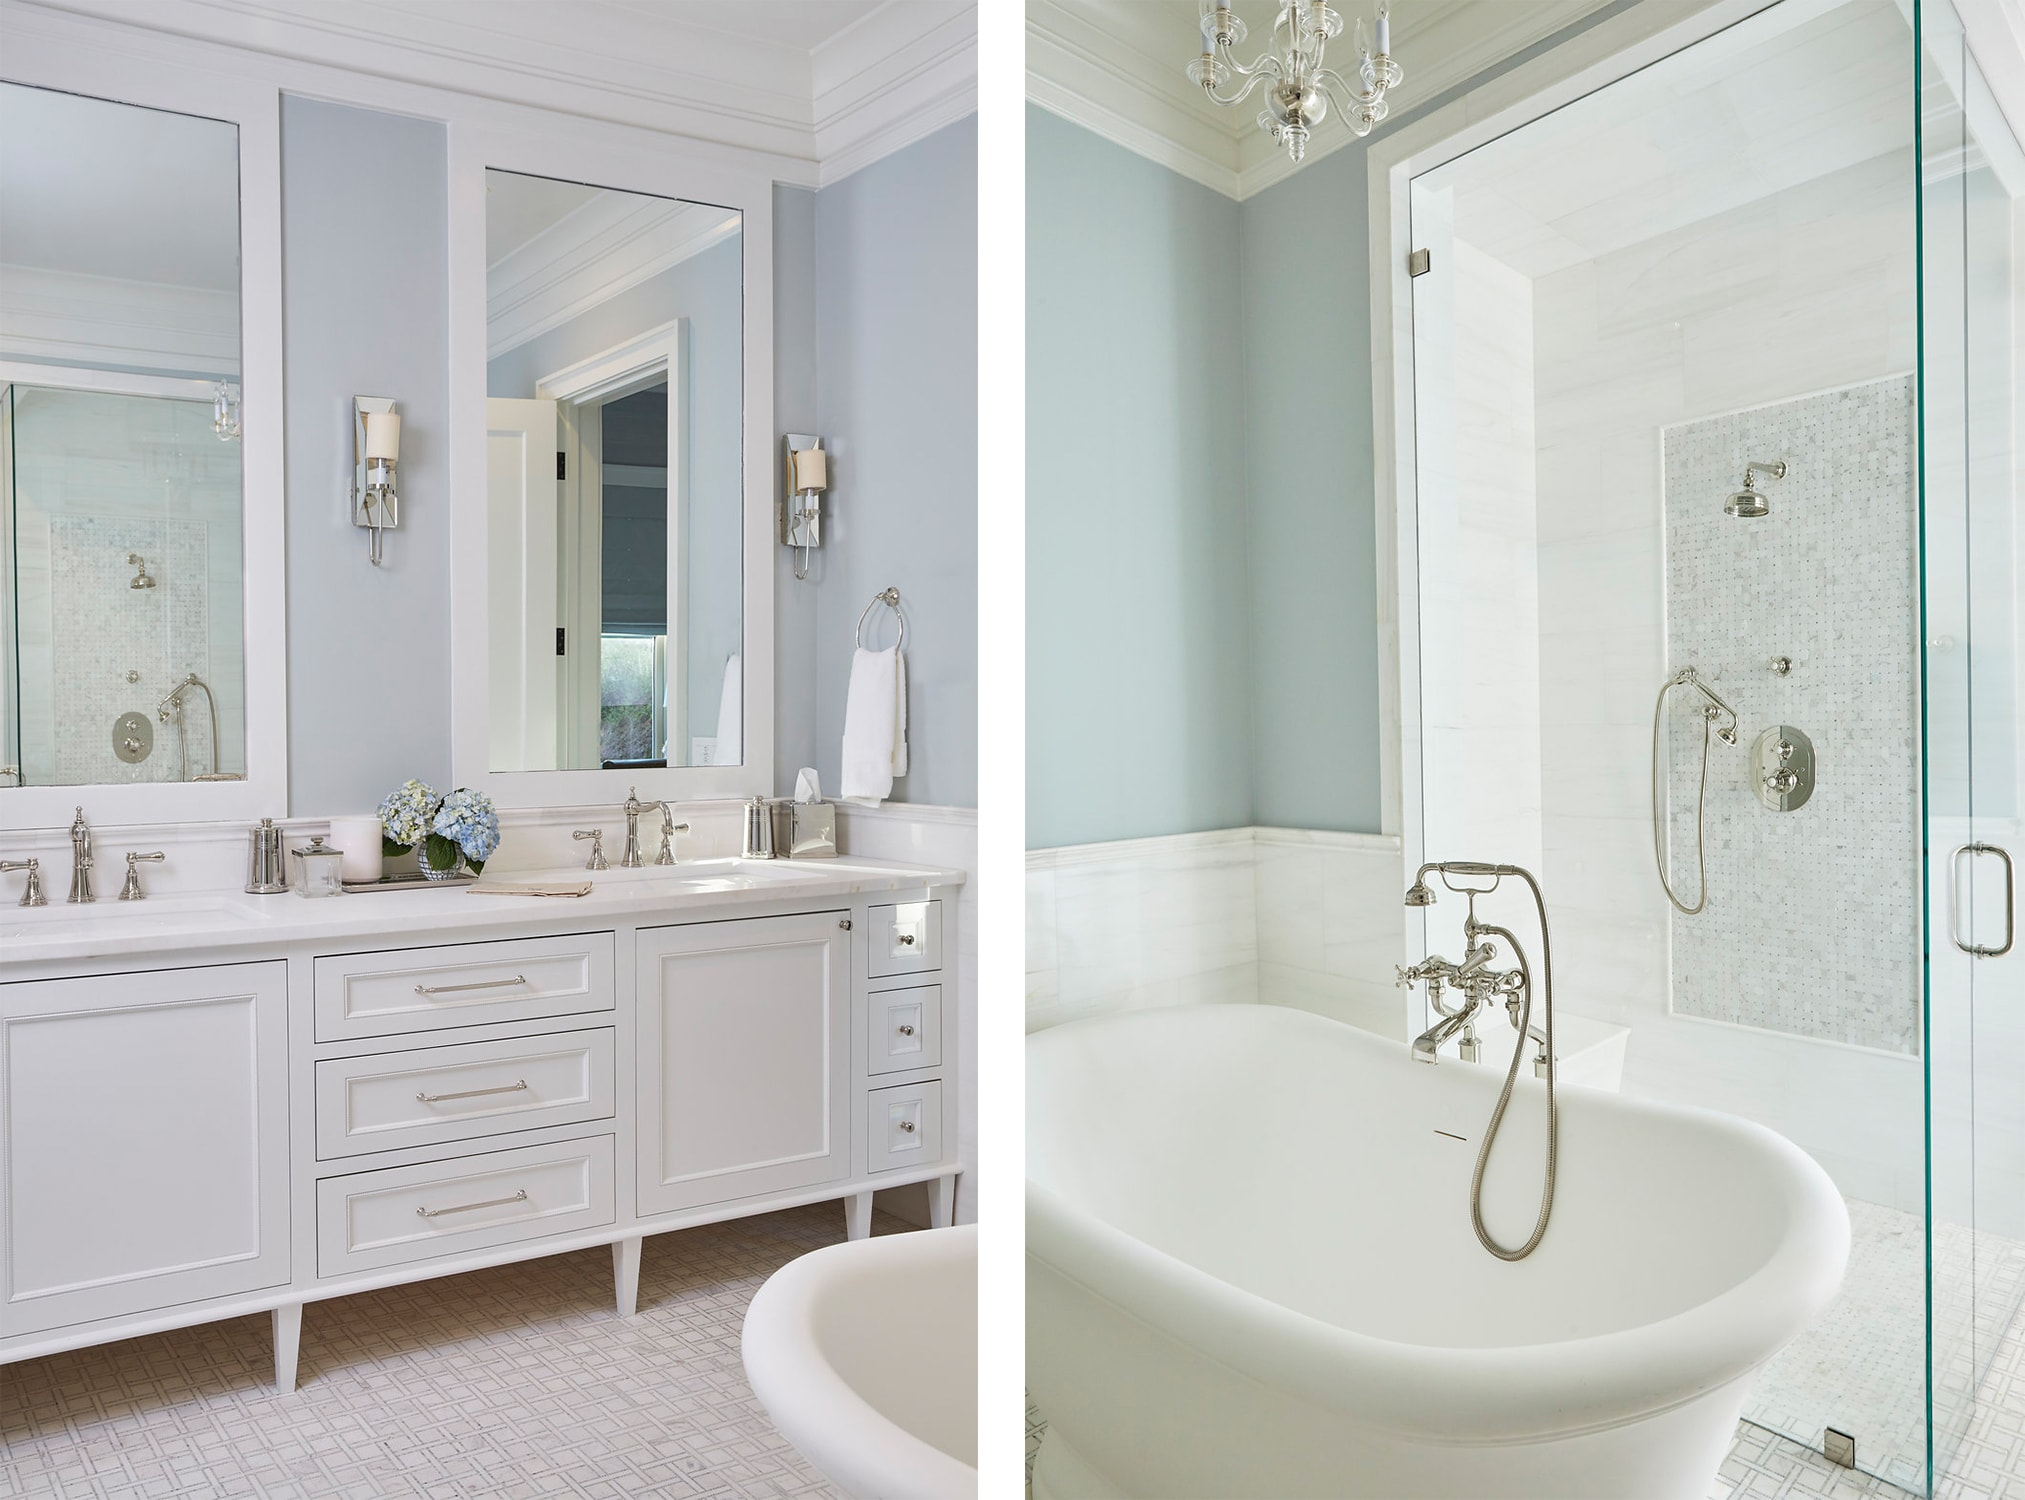 florida beach house luxurious spa master bathroom with a double vanity, deep soaker tub, shower, and light blue walls. - darci hether new york